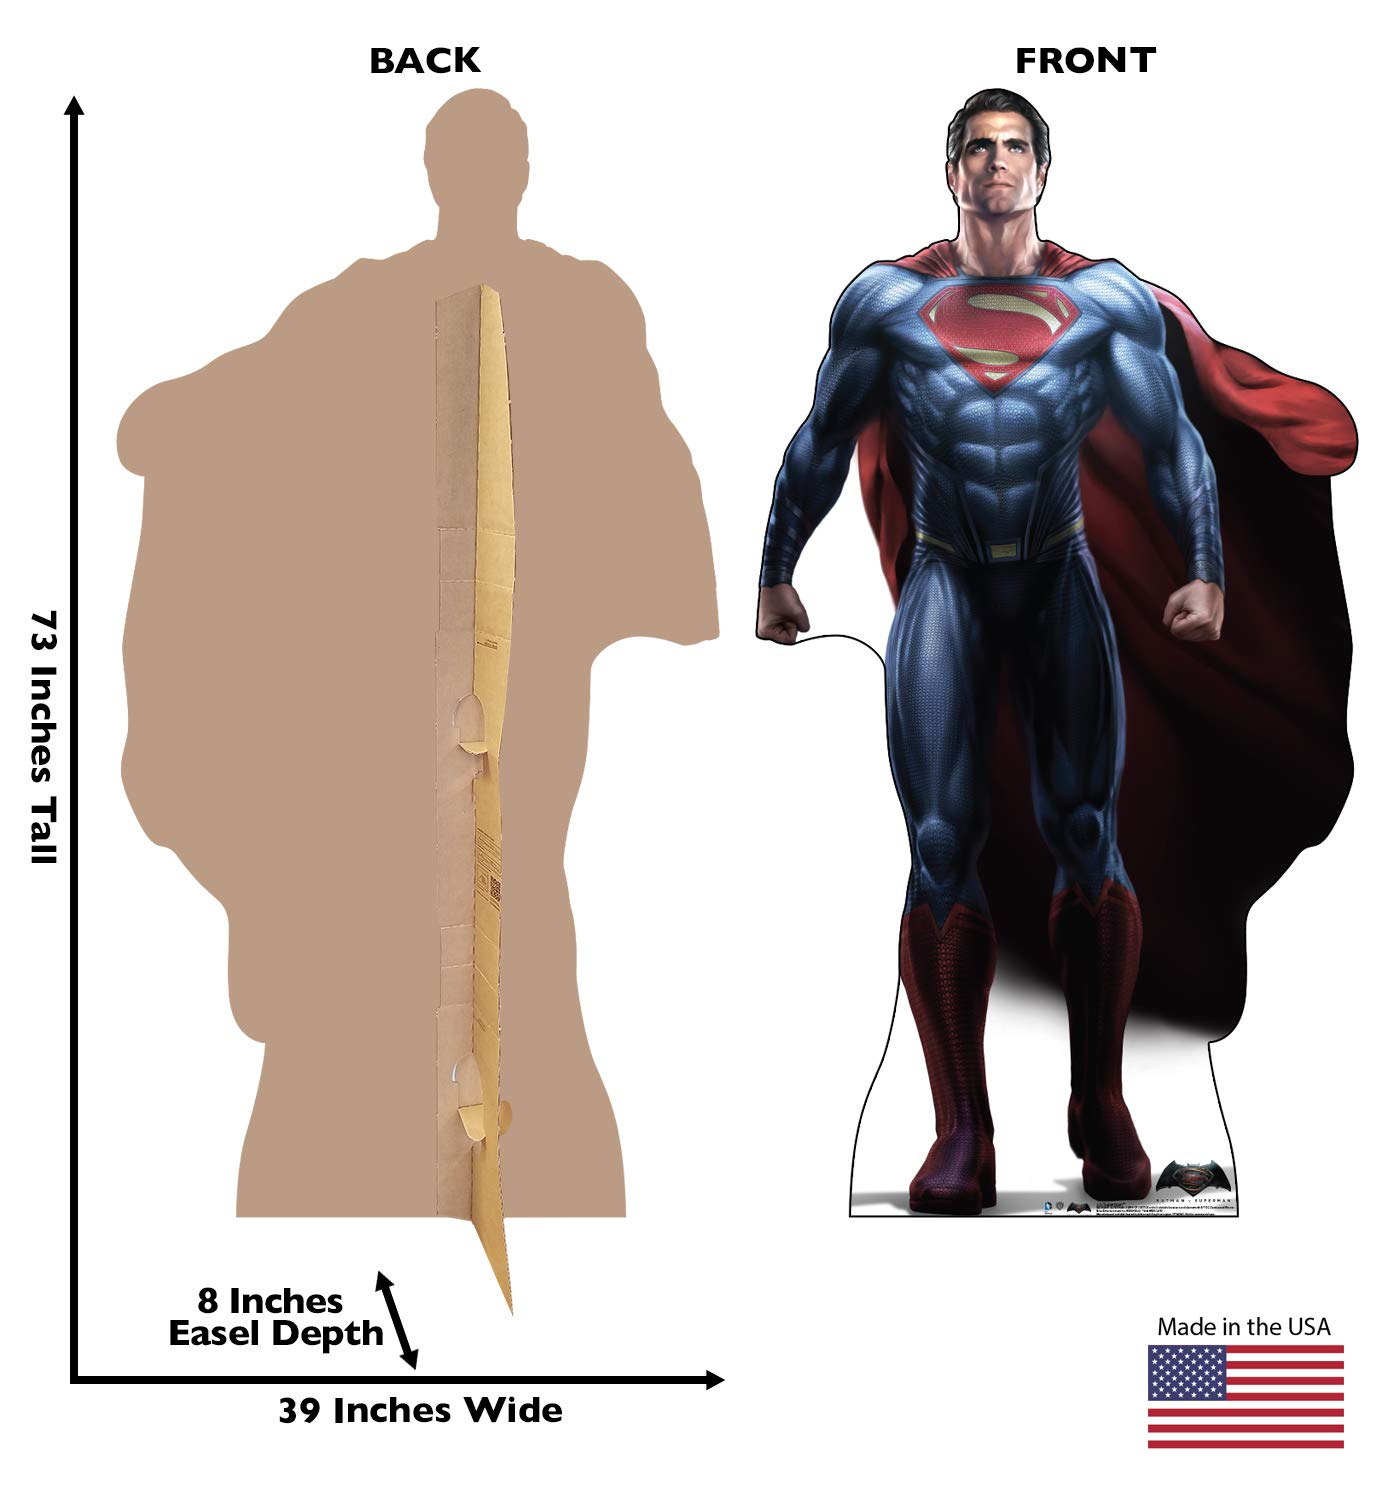 Advanced Graphics Superman Life Size Cardboard Cutout Standup - Batman V Superman: Dawn of Justice (2016) by Advanced Graphics (Image #2)